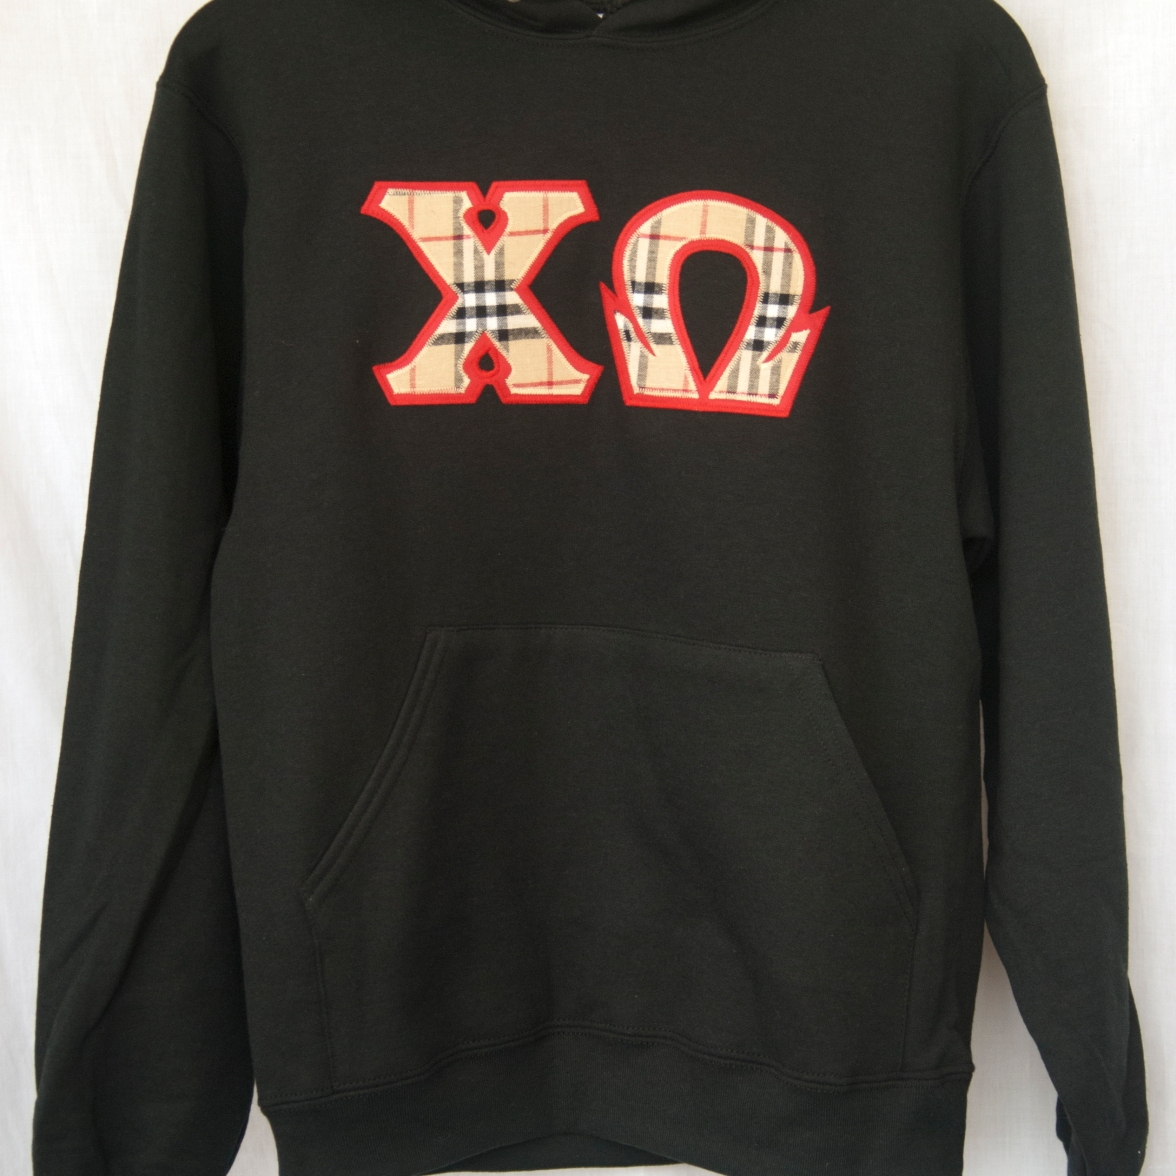 Hooded Sweatshirt 8oz - Black | http://goo.gl/XjqtNy